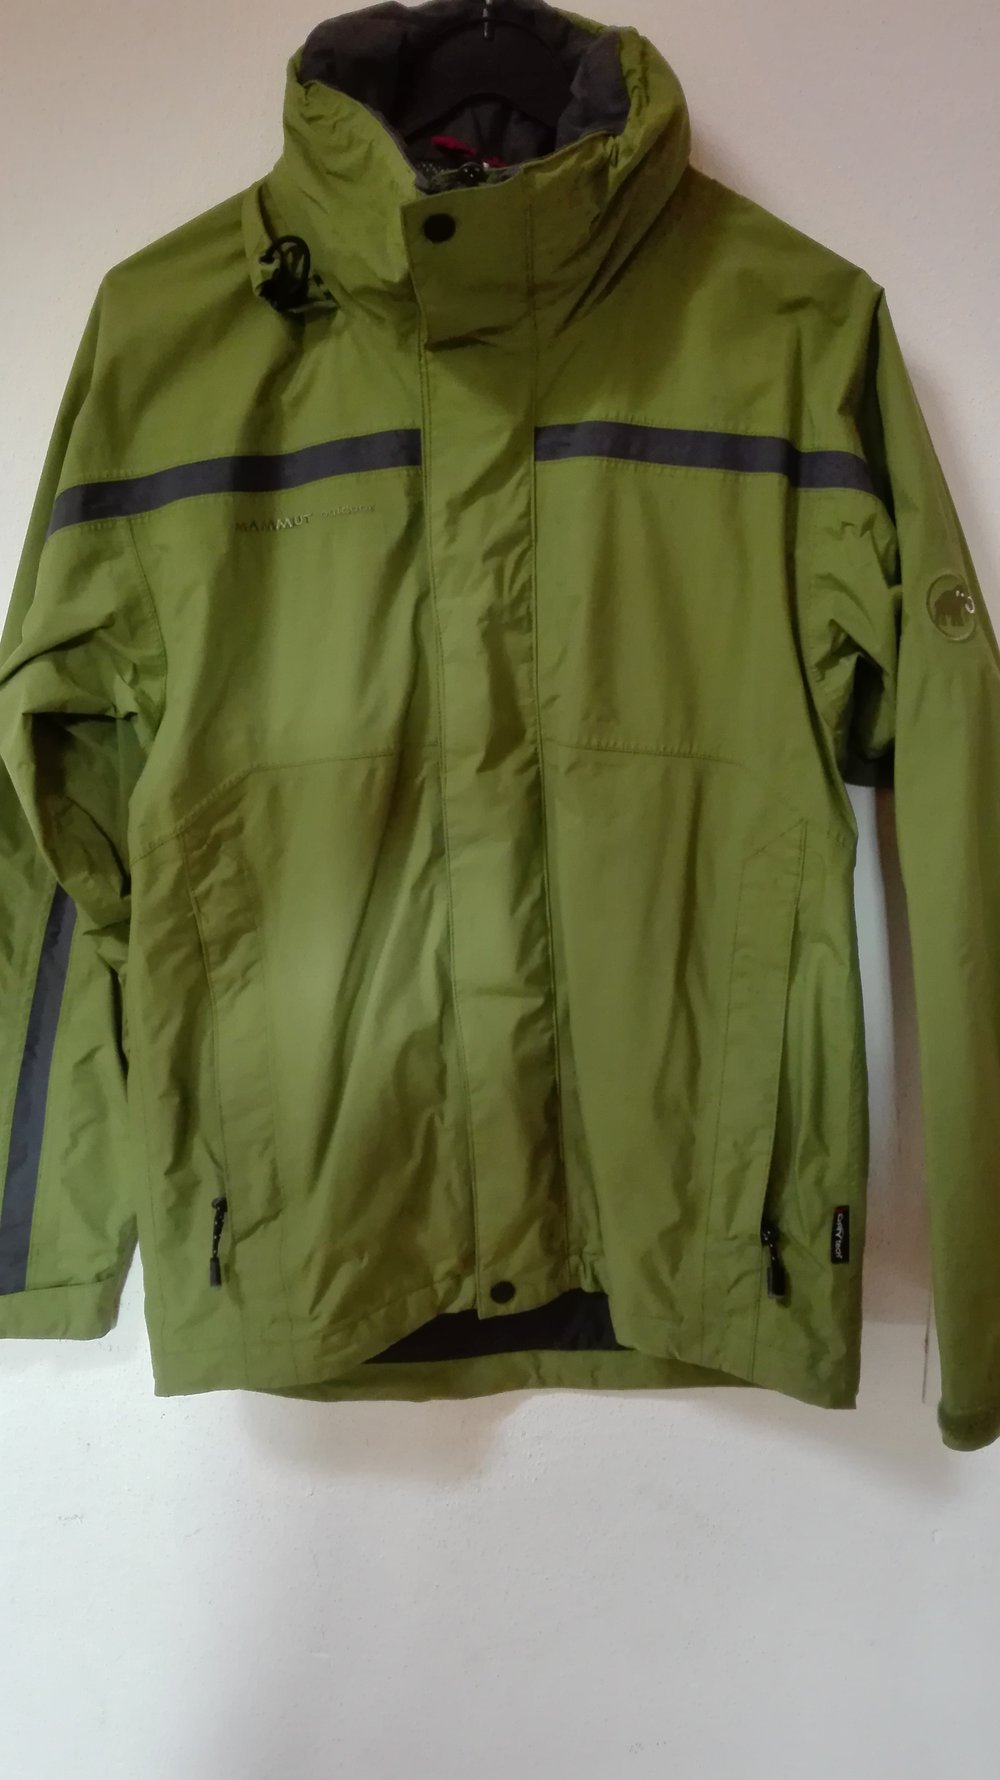 low priced b3740 c9034 Mammut Jacke DRY Tech Outdoor